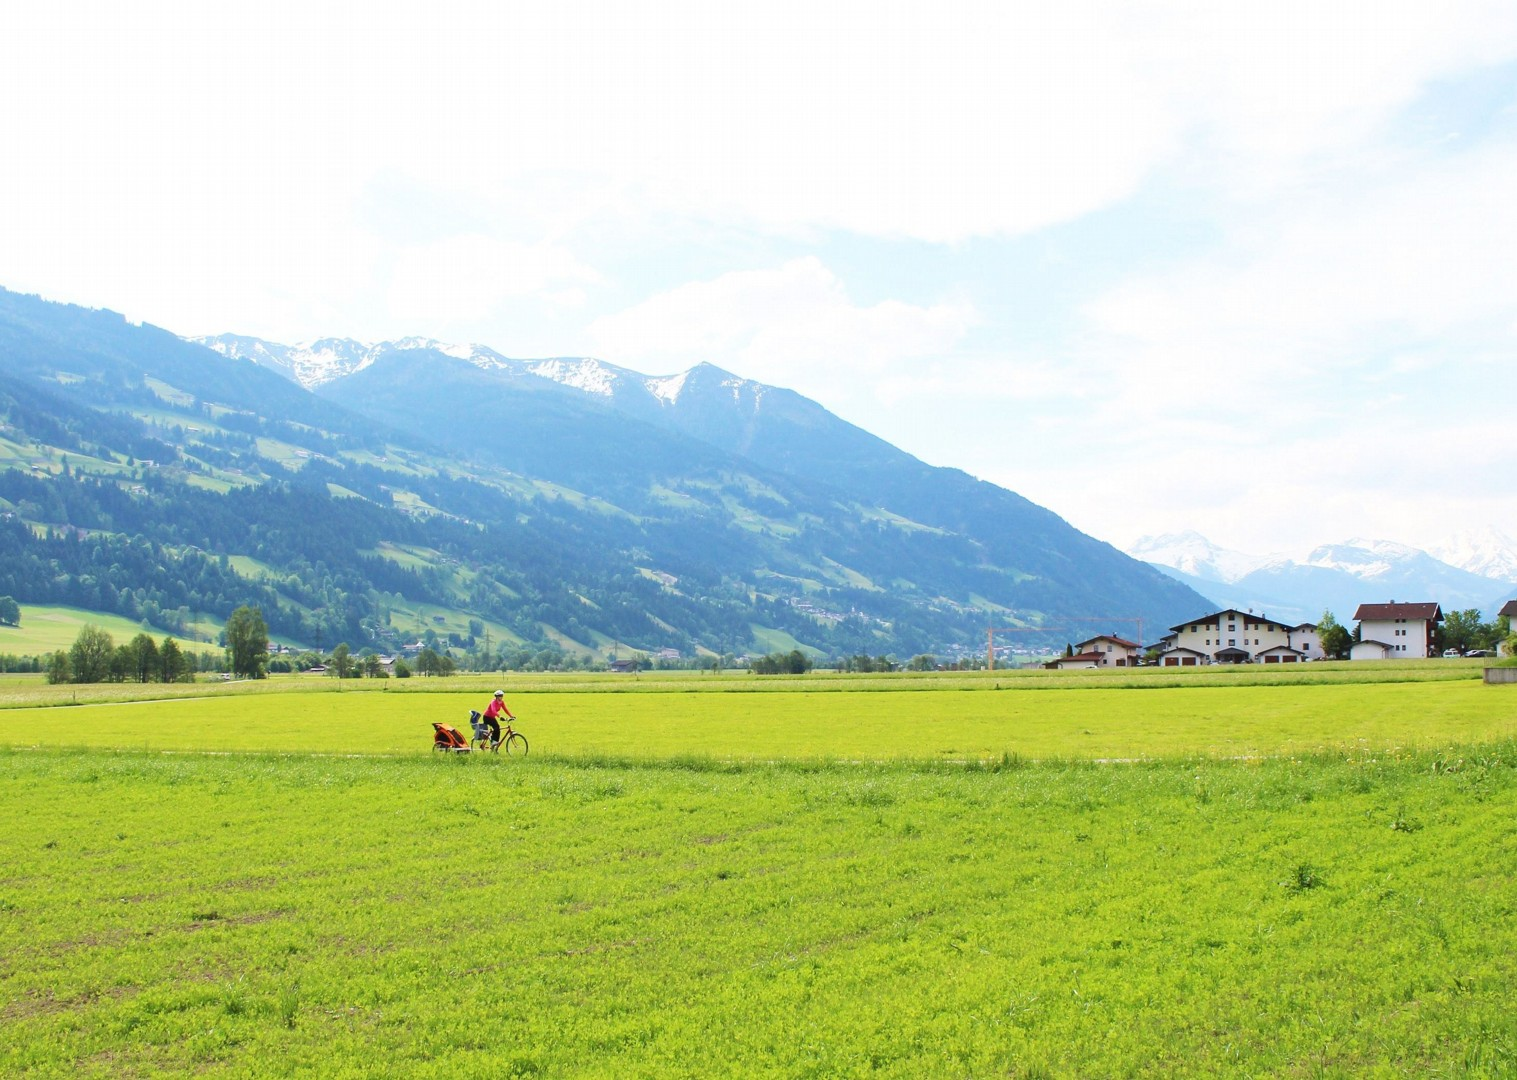 beautiful-scenery-austria-cycling-adventure.jpg - Austria - Tauern Valleys - Self-Guided Family Cycling Holiday - Family Cycling